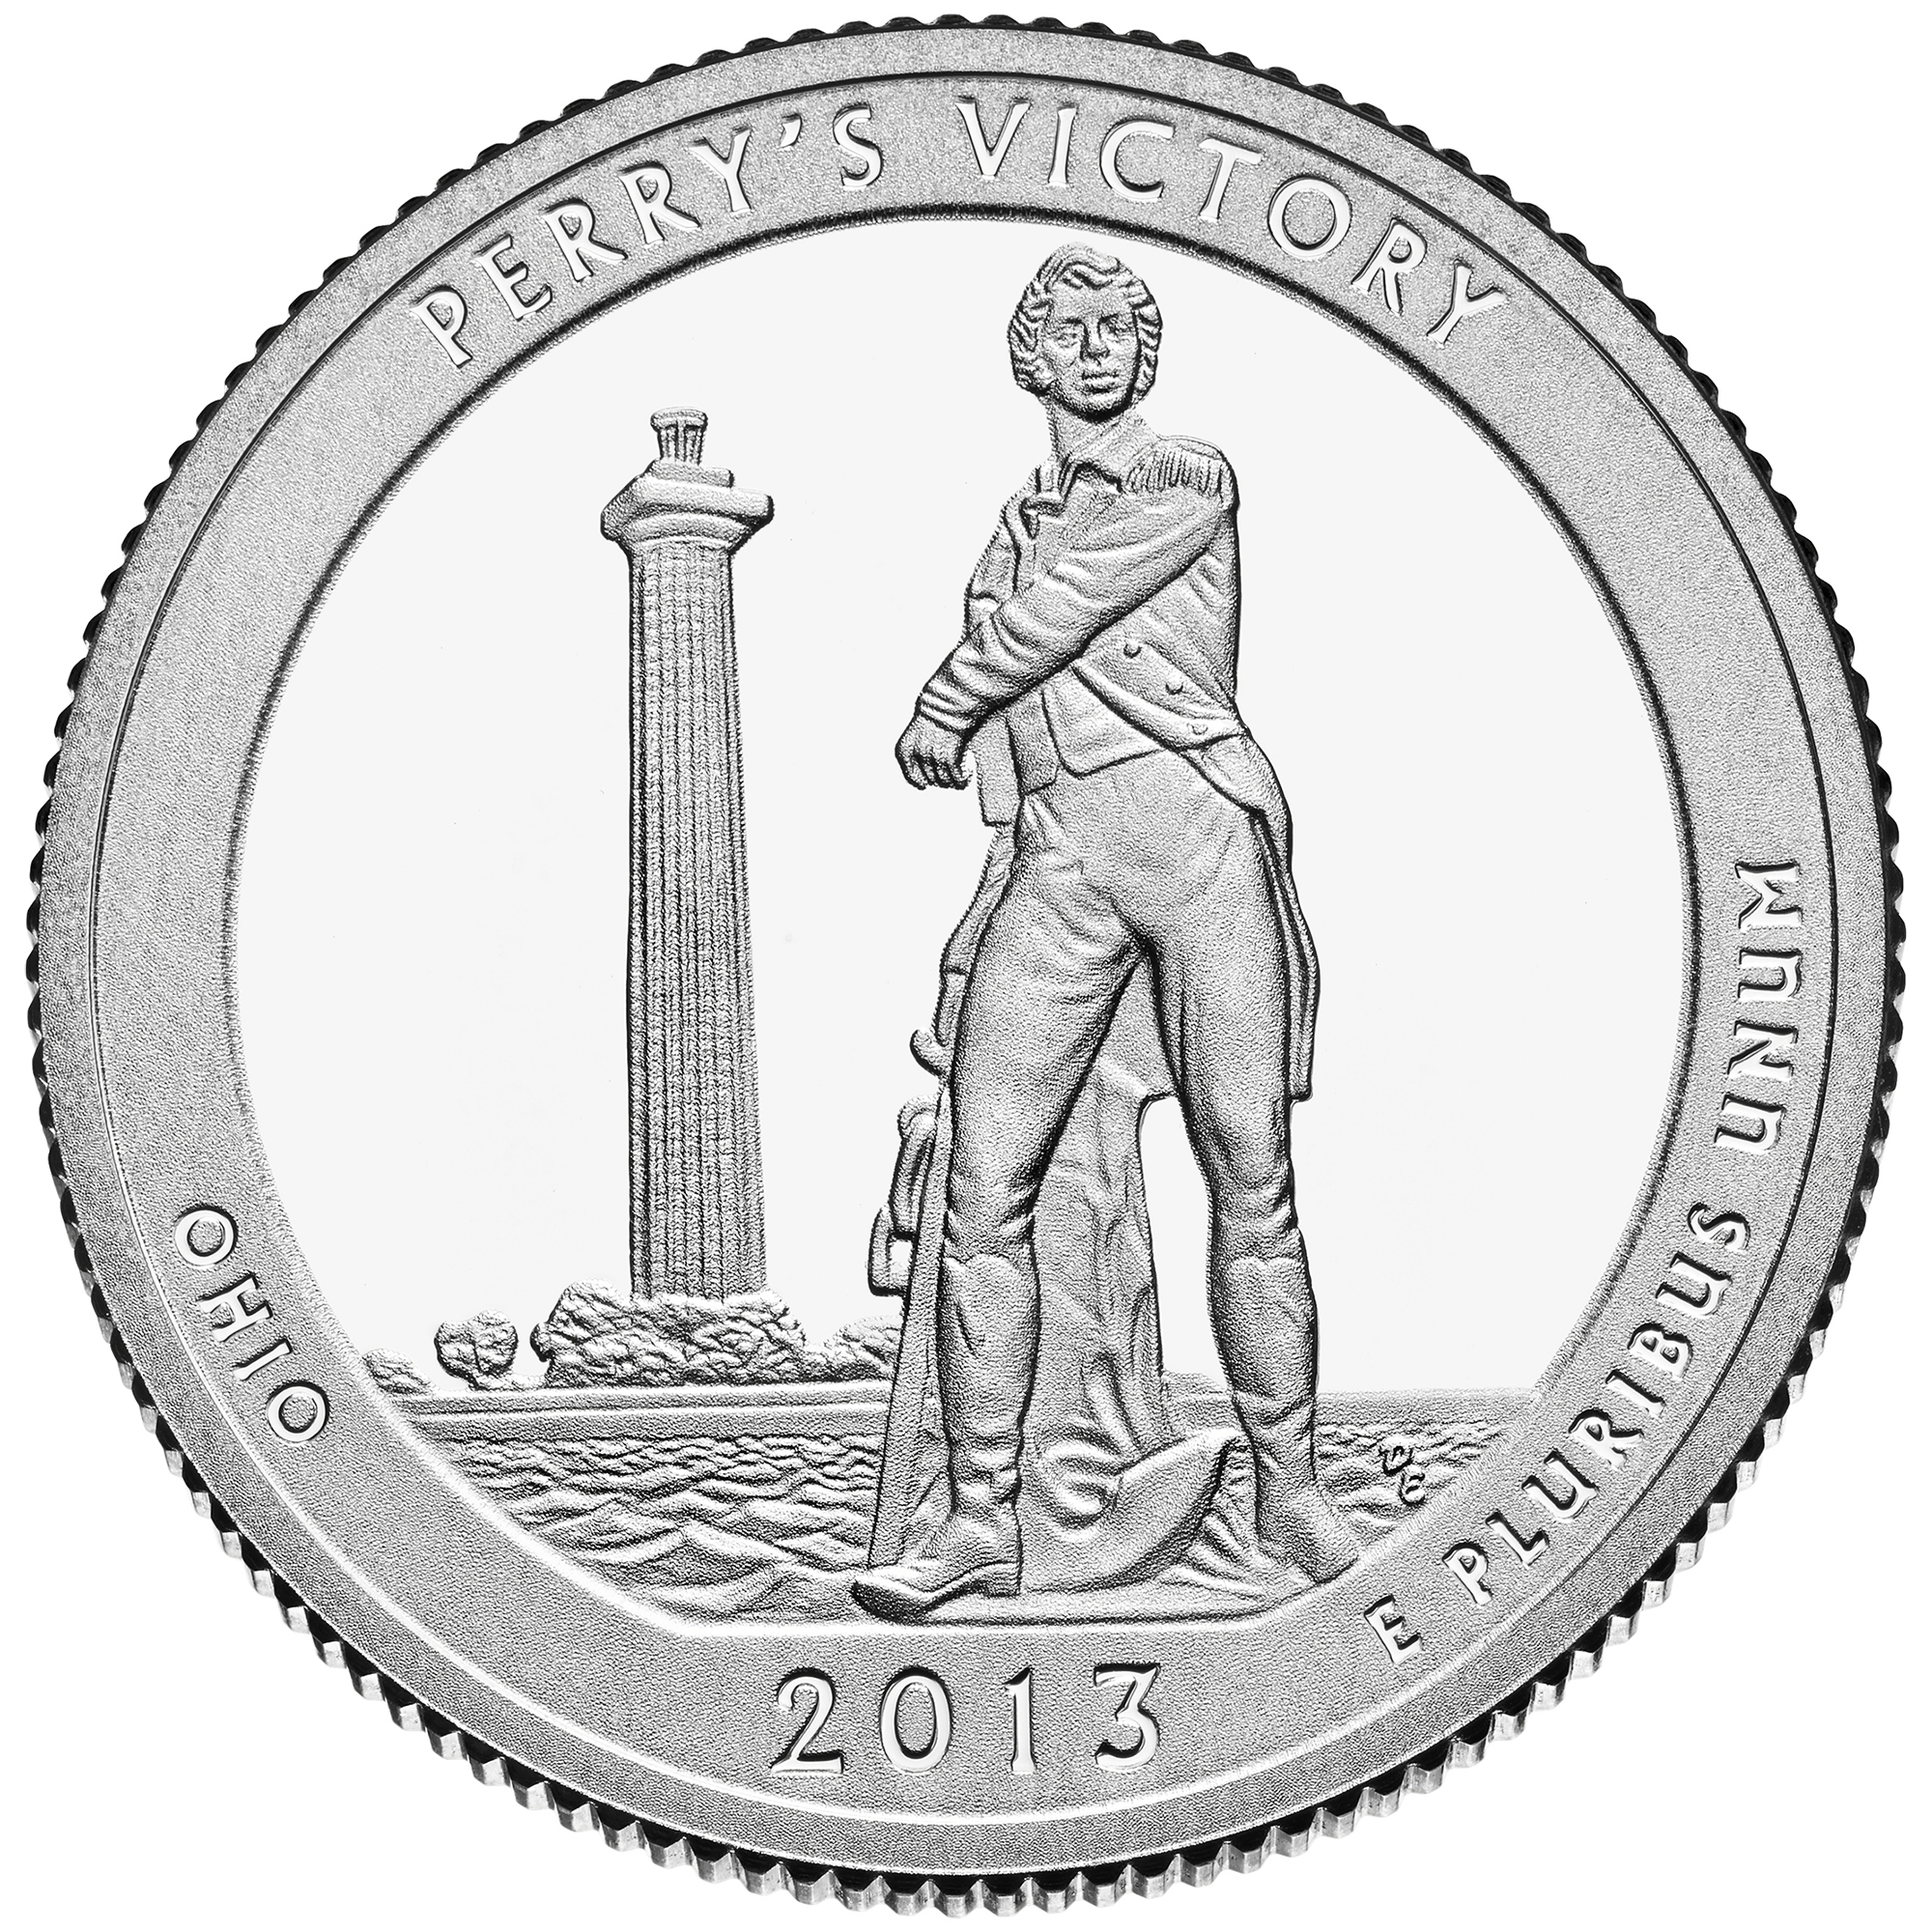 2013 America The Beautiful Quarters Coin Perrys Victory Ohio Proof Reverse